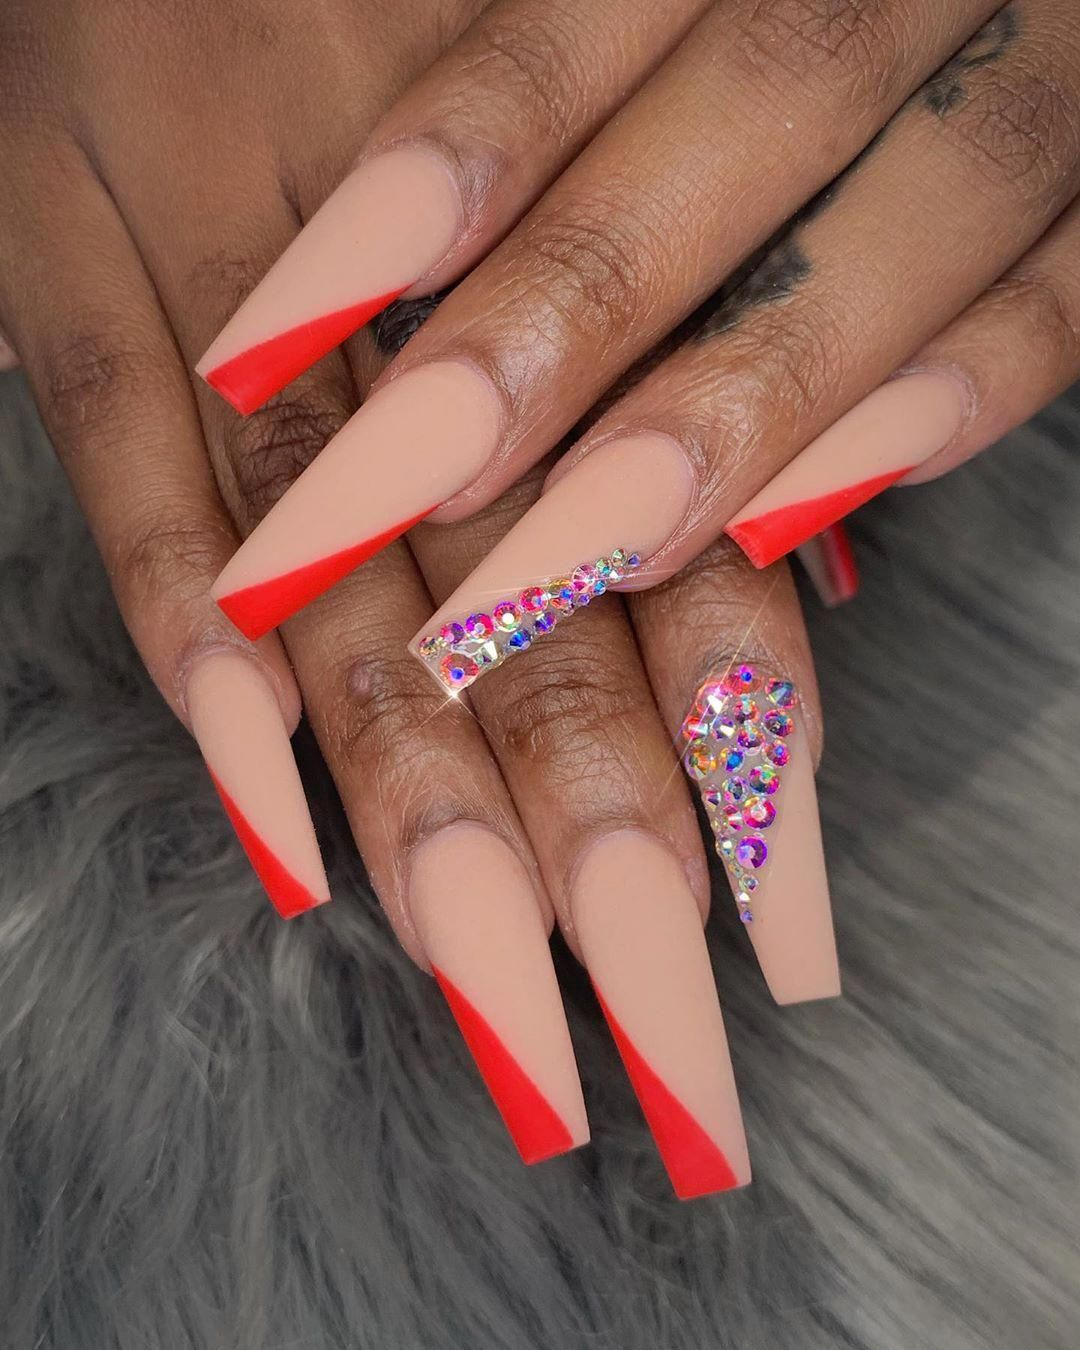 50 Cute Fall Nail Designs Ideas Colors You Should Try In 2020 Pink Acrylic Nails Cute Nails For Fall Acrylic Nail Designs